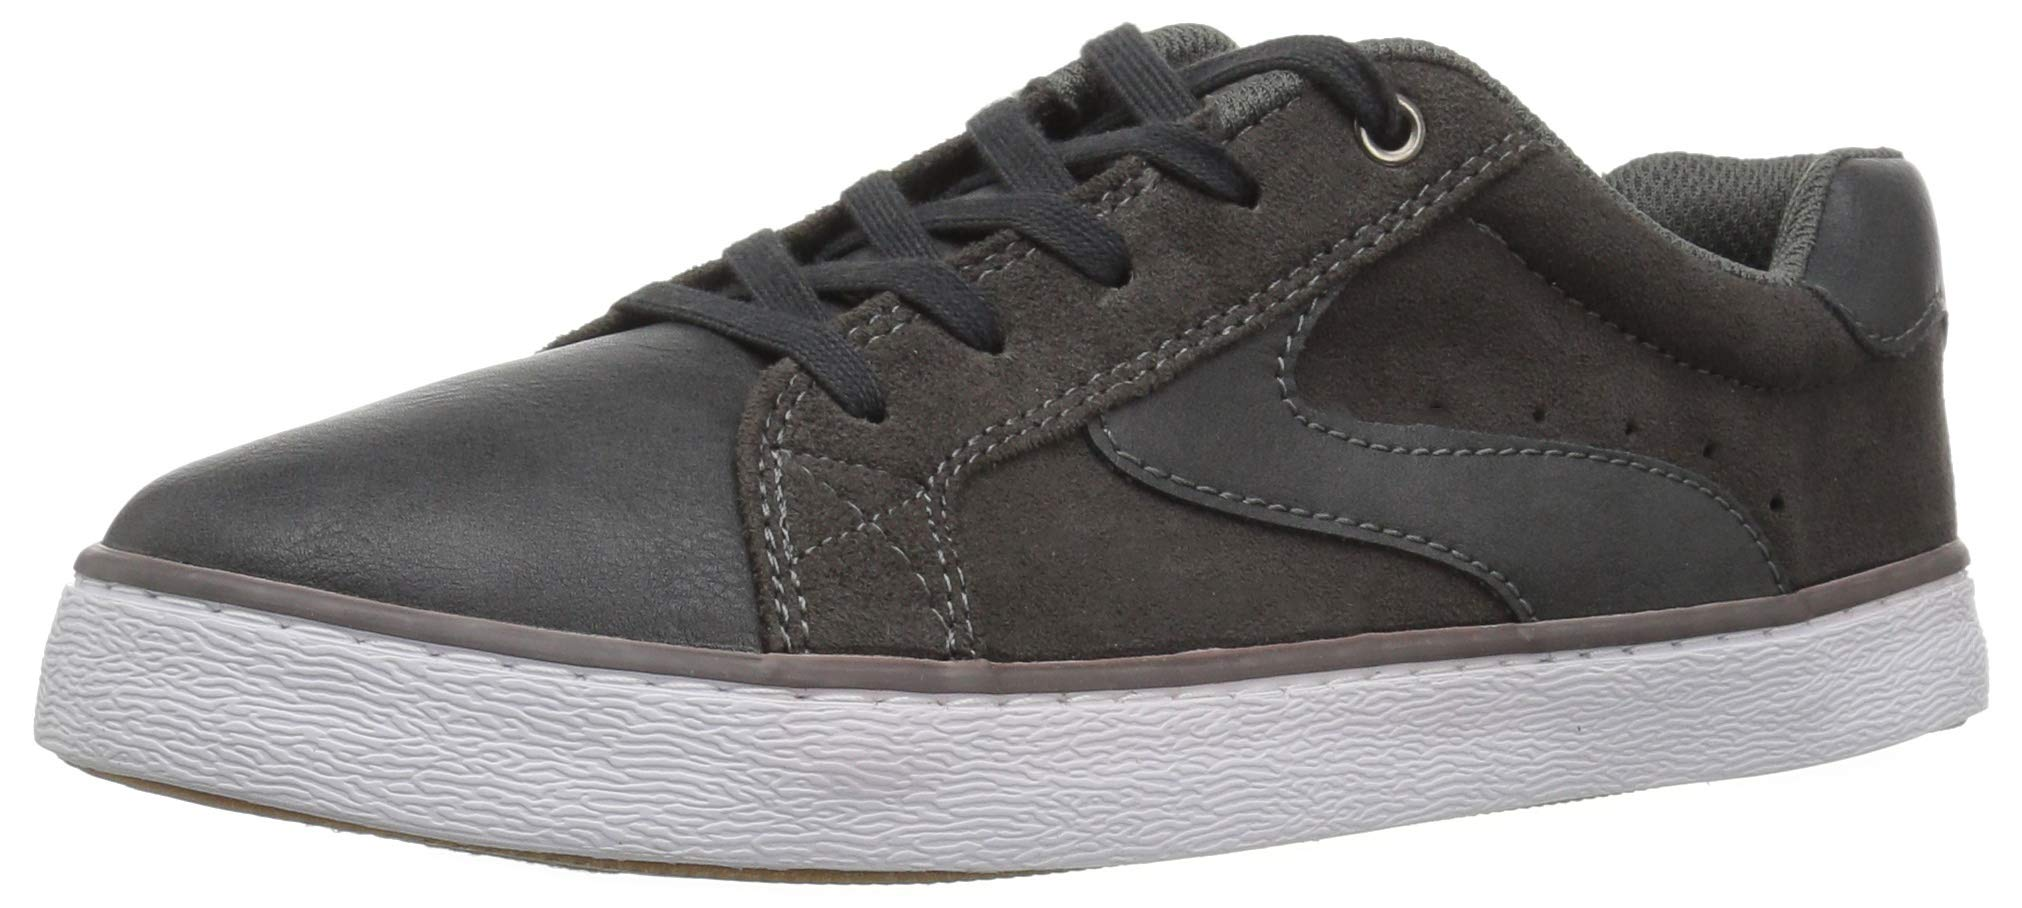 The Children's Place Boys' Low Top Sneaker, Nordic Gray, Youth 11 Child US Little Kid